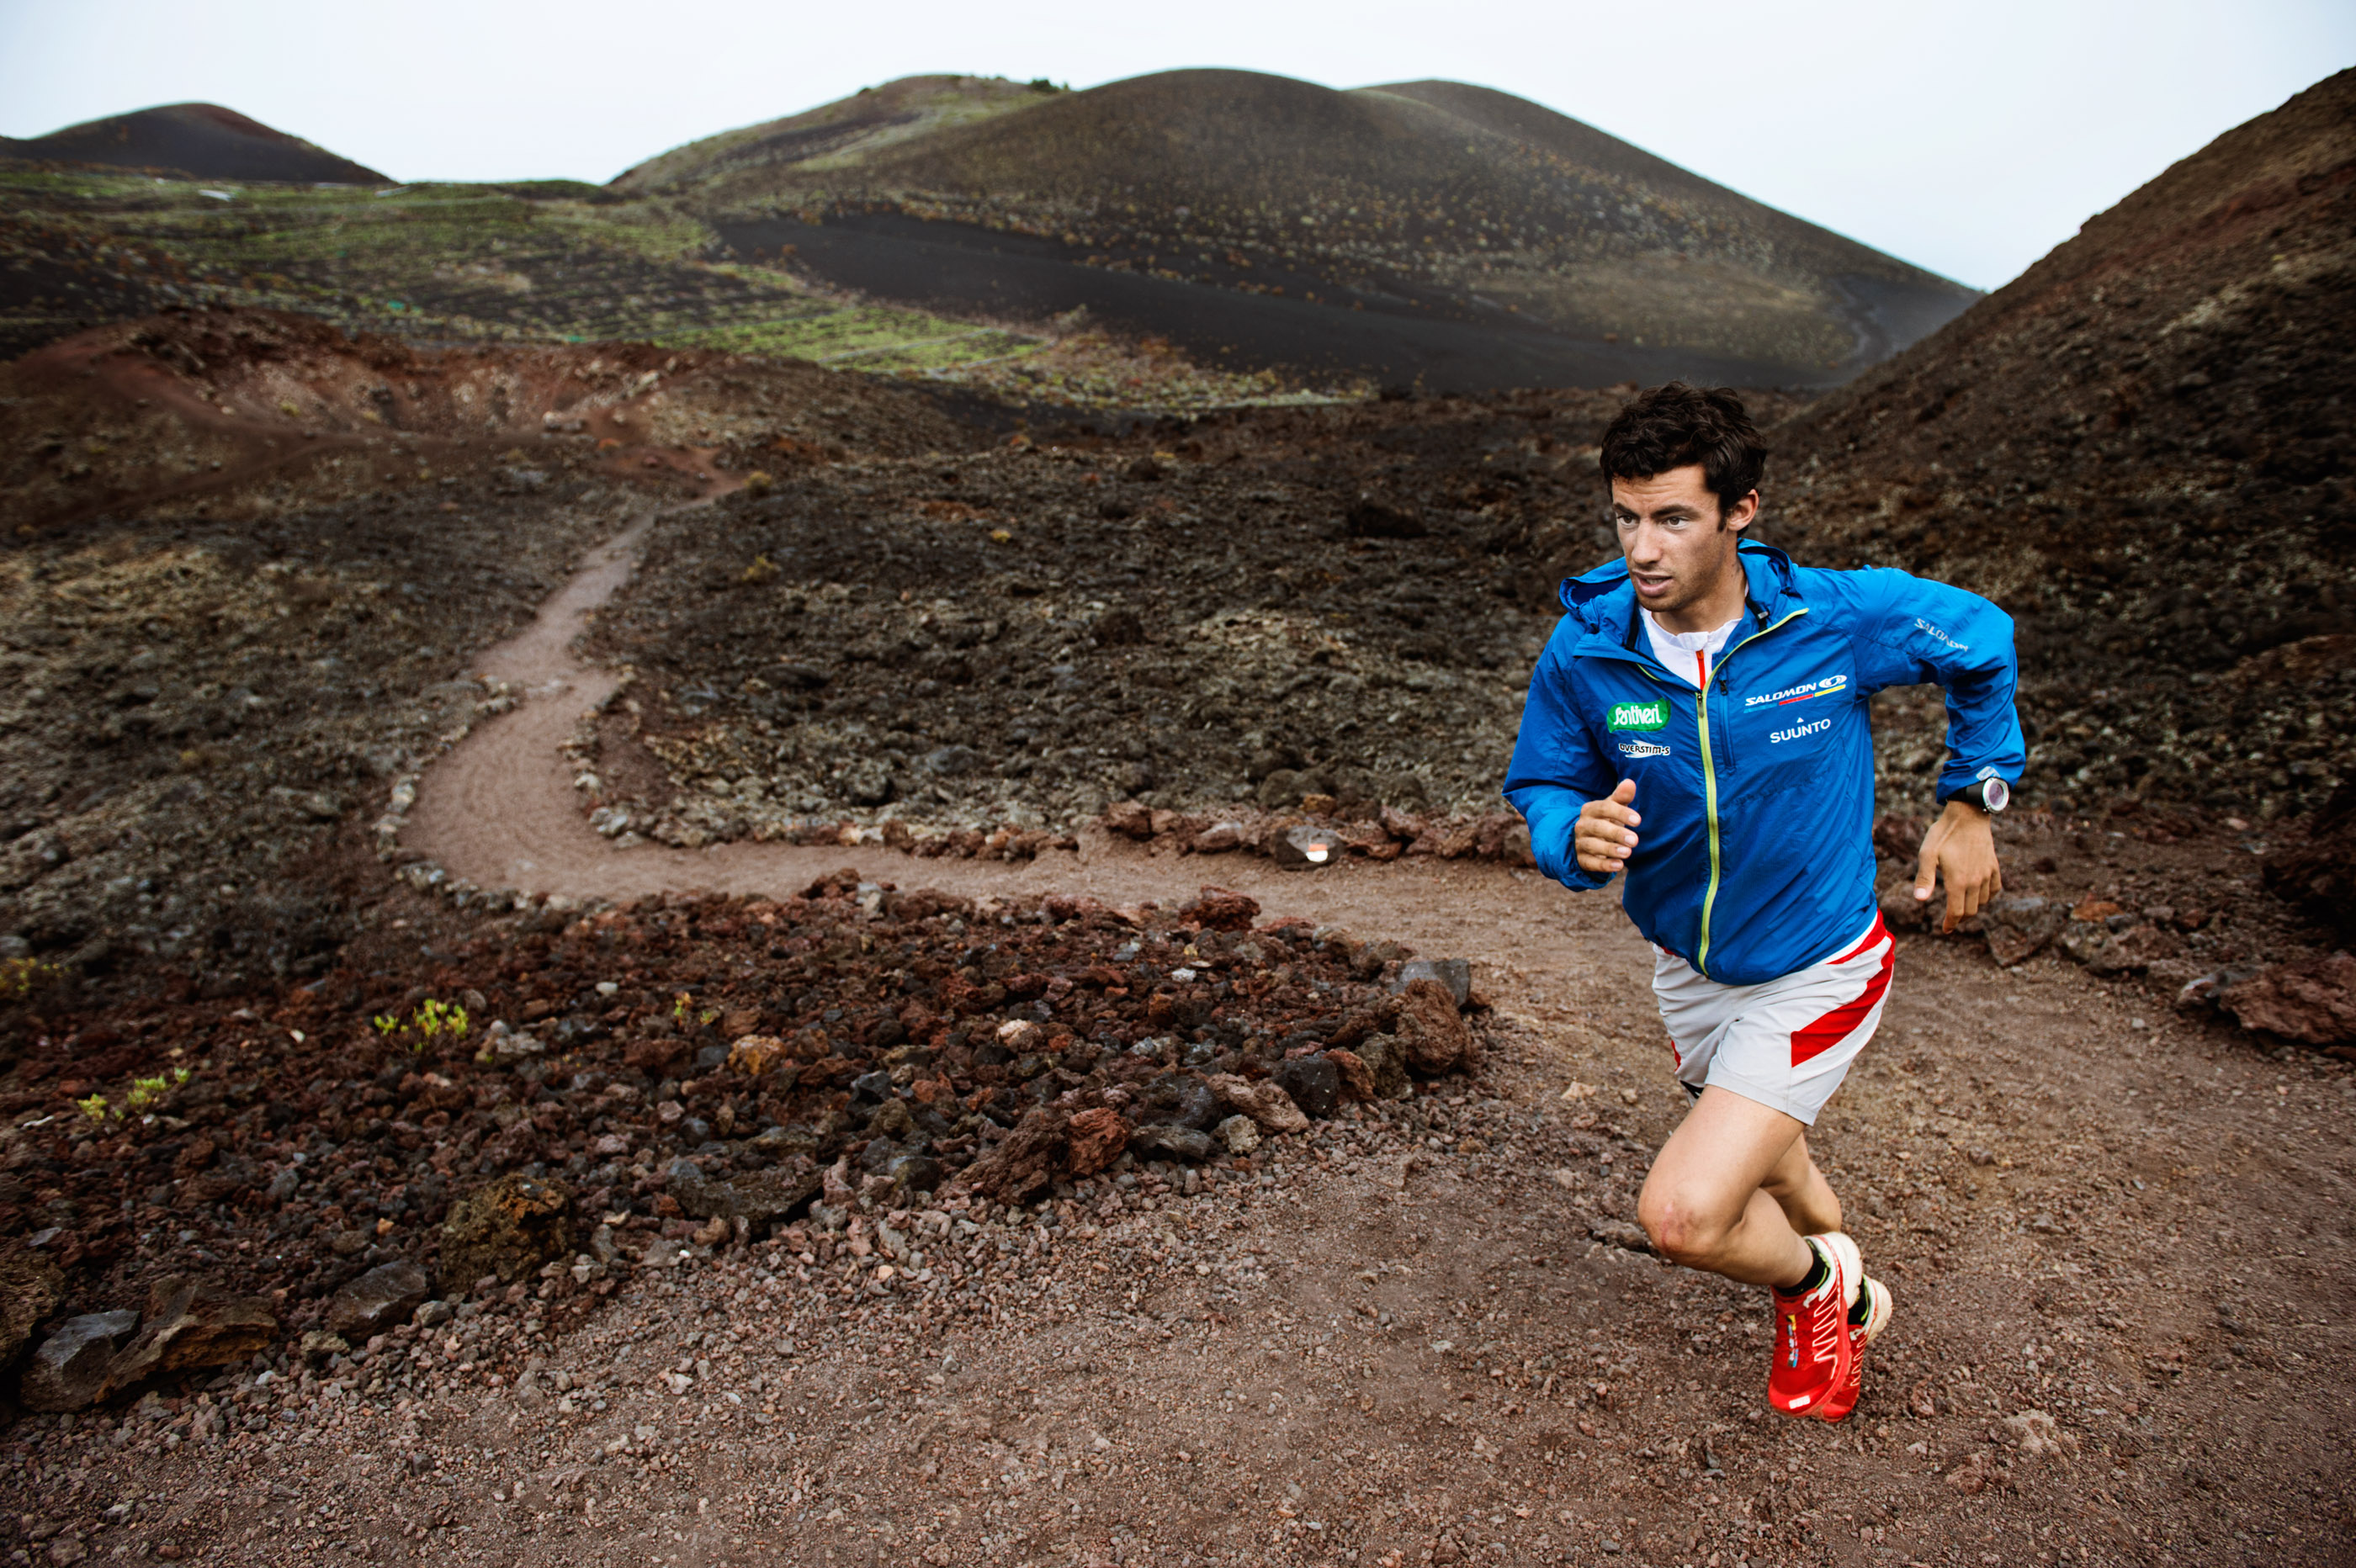 Media Montagna - Outdoor - Running / Trail